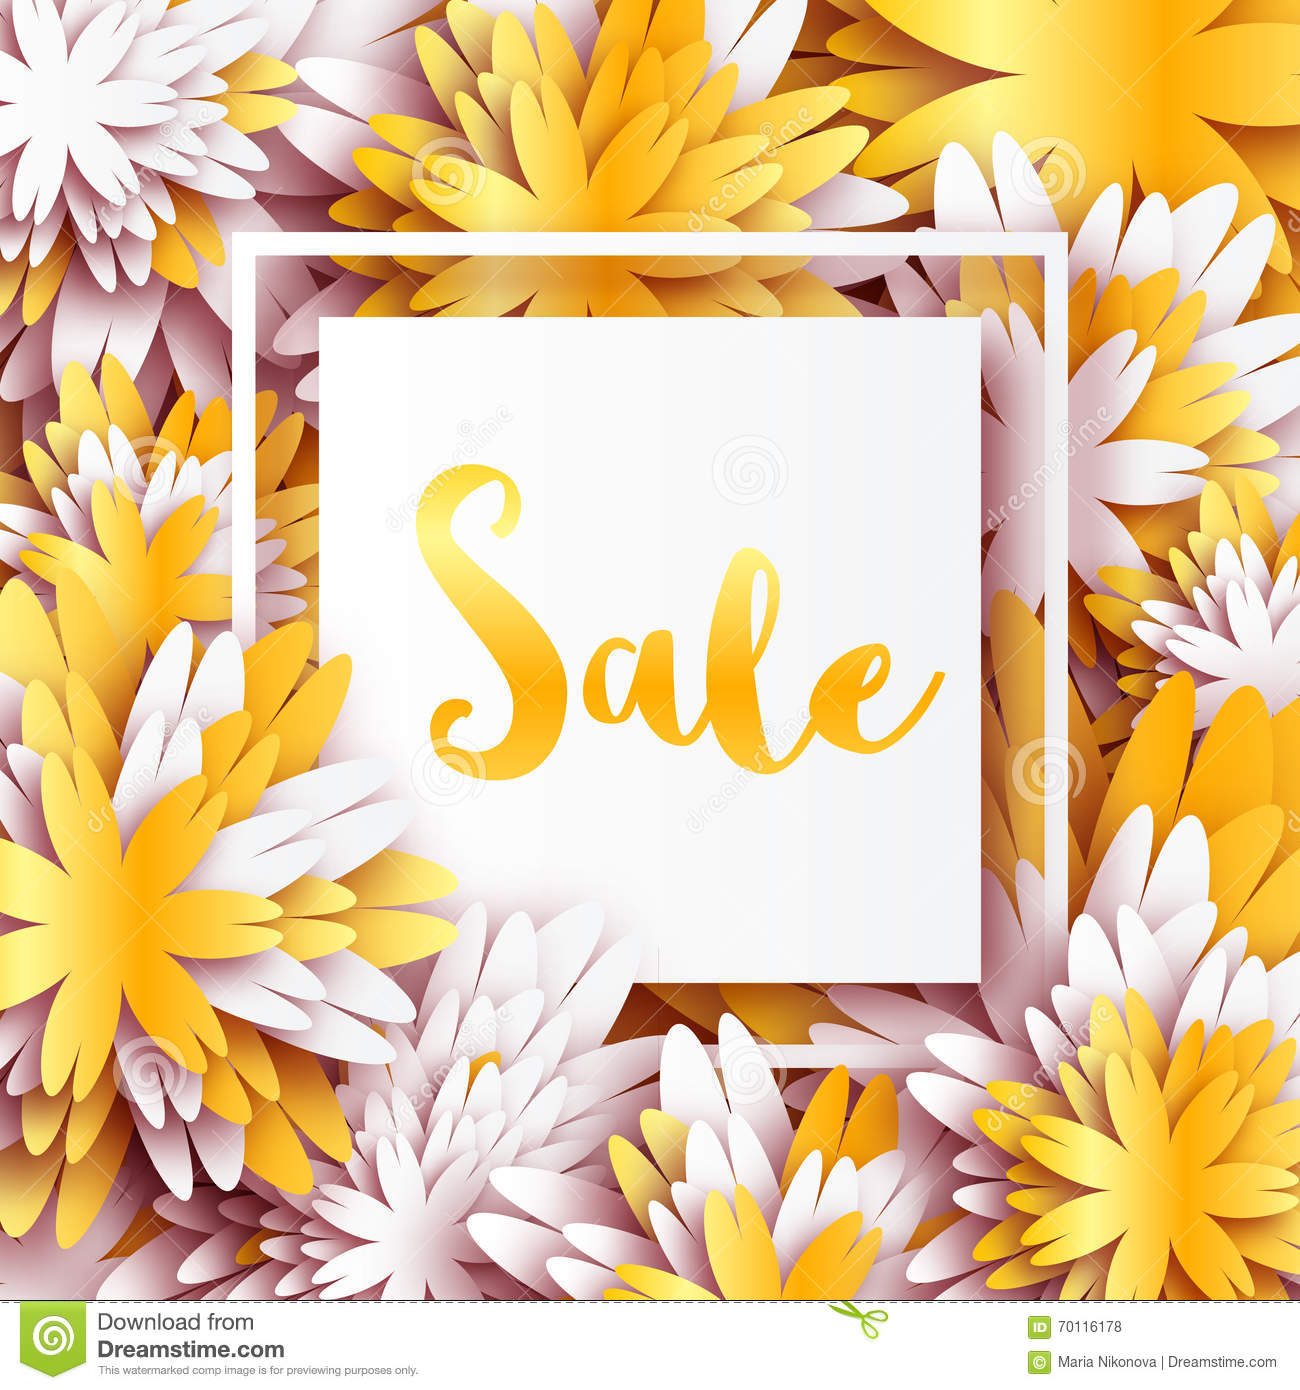 Golden foil spring summer sale banner with frame for business stock golden foil spring summer sale banner with frame for business applique card with origami flowers offers message trendy design template for card vip mightylinksfo